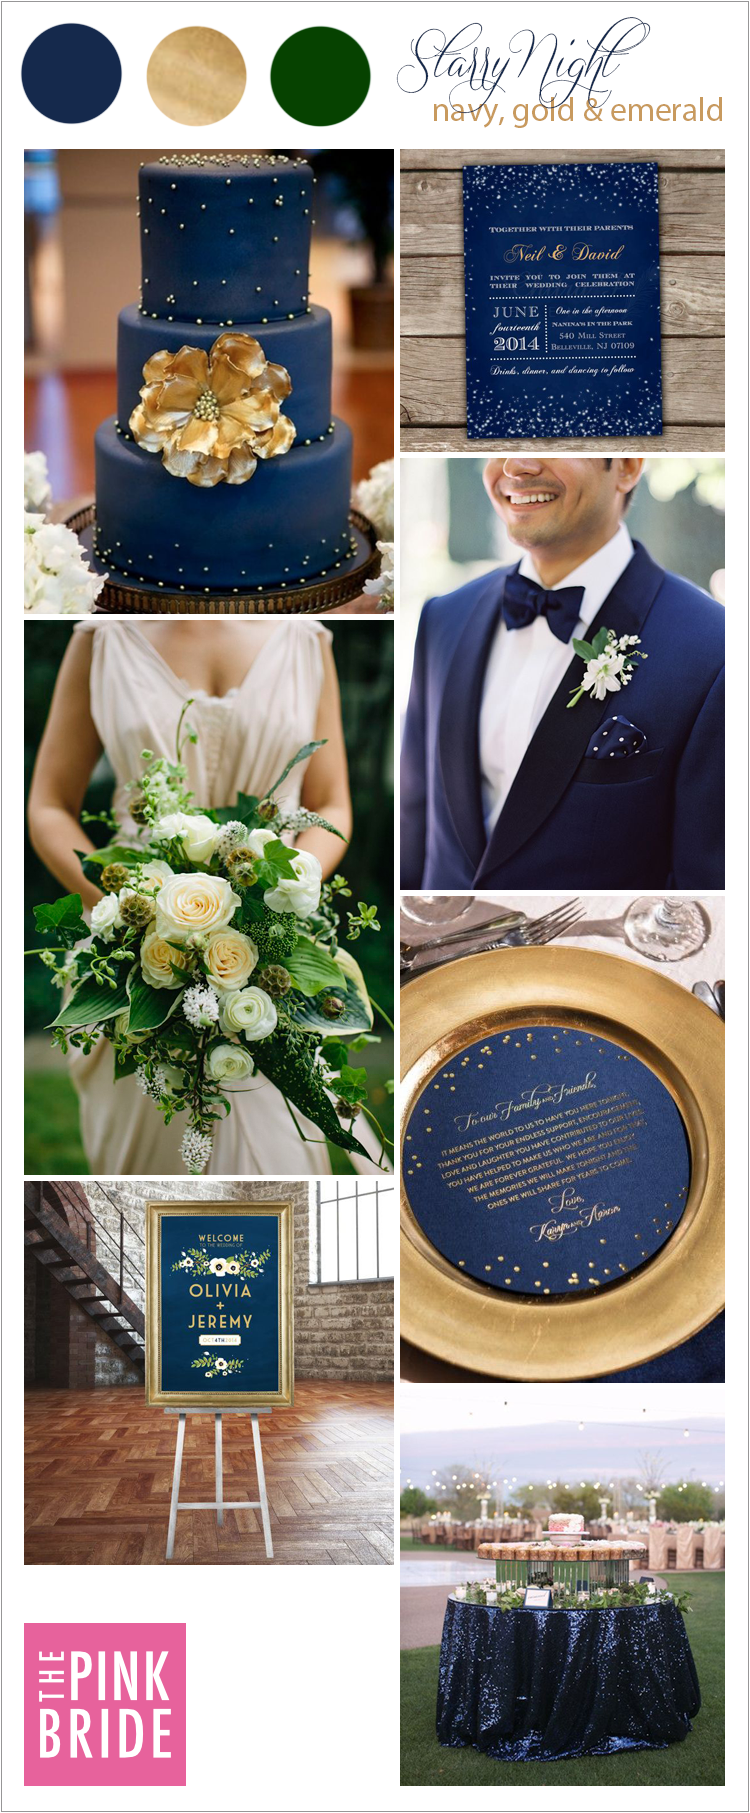 Wedding Color Board Starry Night Navy Gold Amp Emerald